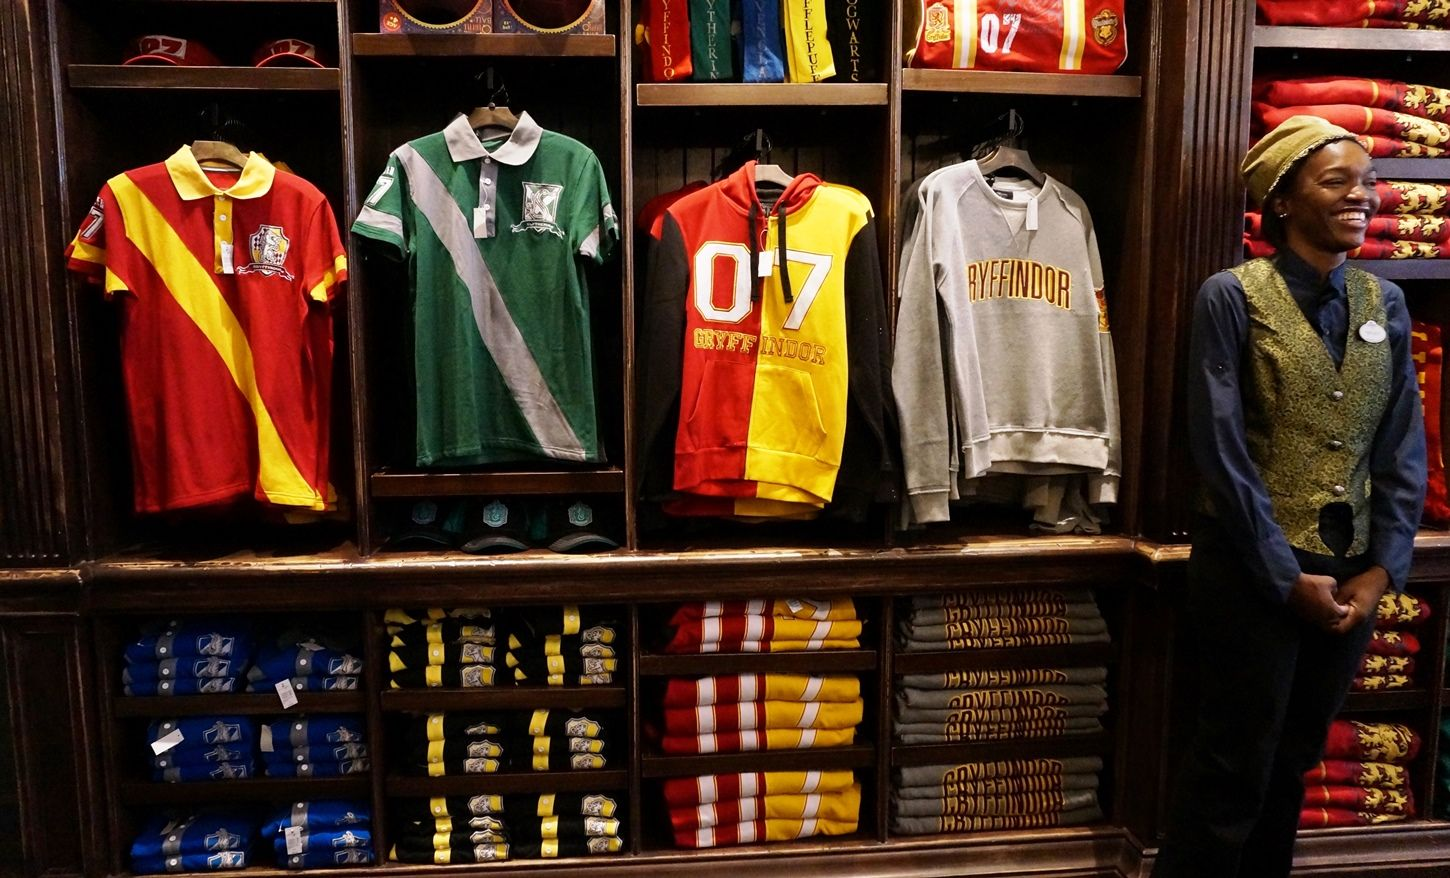 924baa4f3 Shopping & merchandise at the Wizarding World of Harry Potter - Diagon Alley